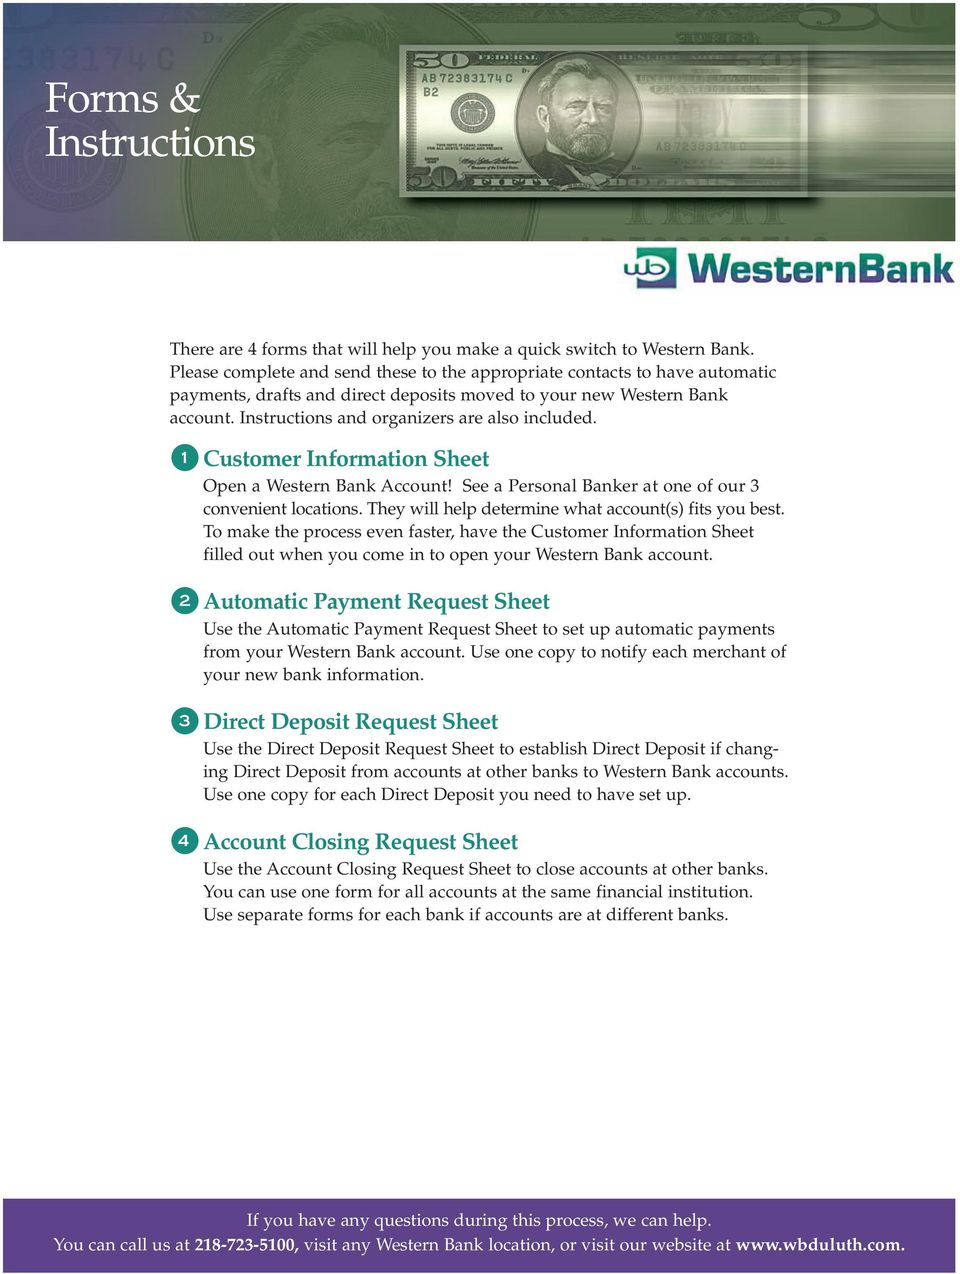 1 Customer Information Sheet Open a Western Bank Account! See a Personal Banker at one of our 3 convenient locations. They will help determine what account(s) fits you best.